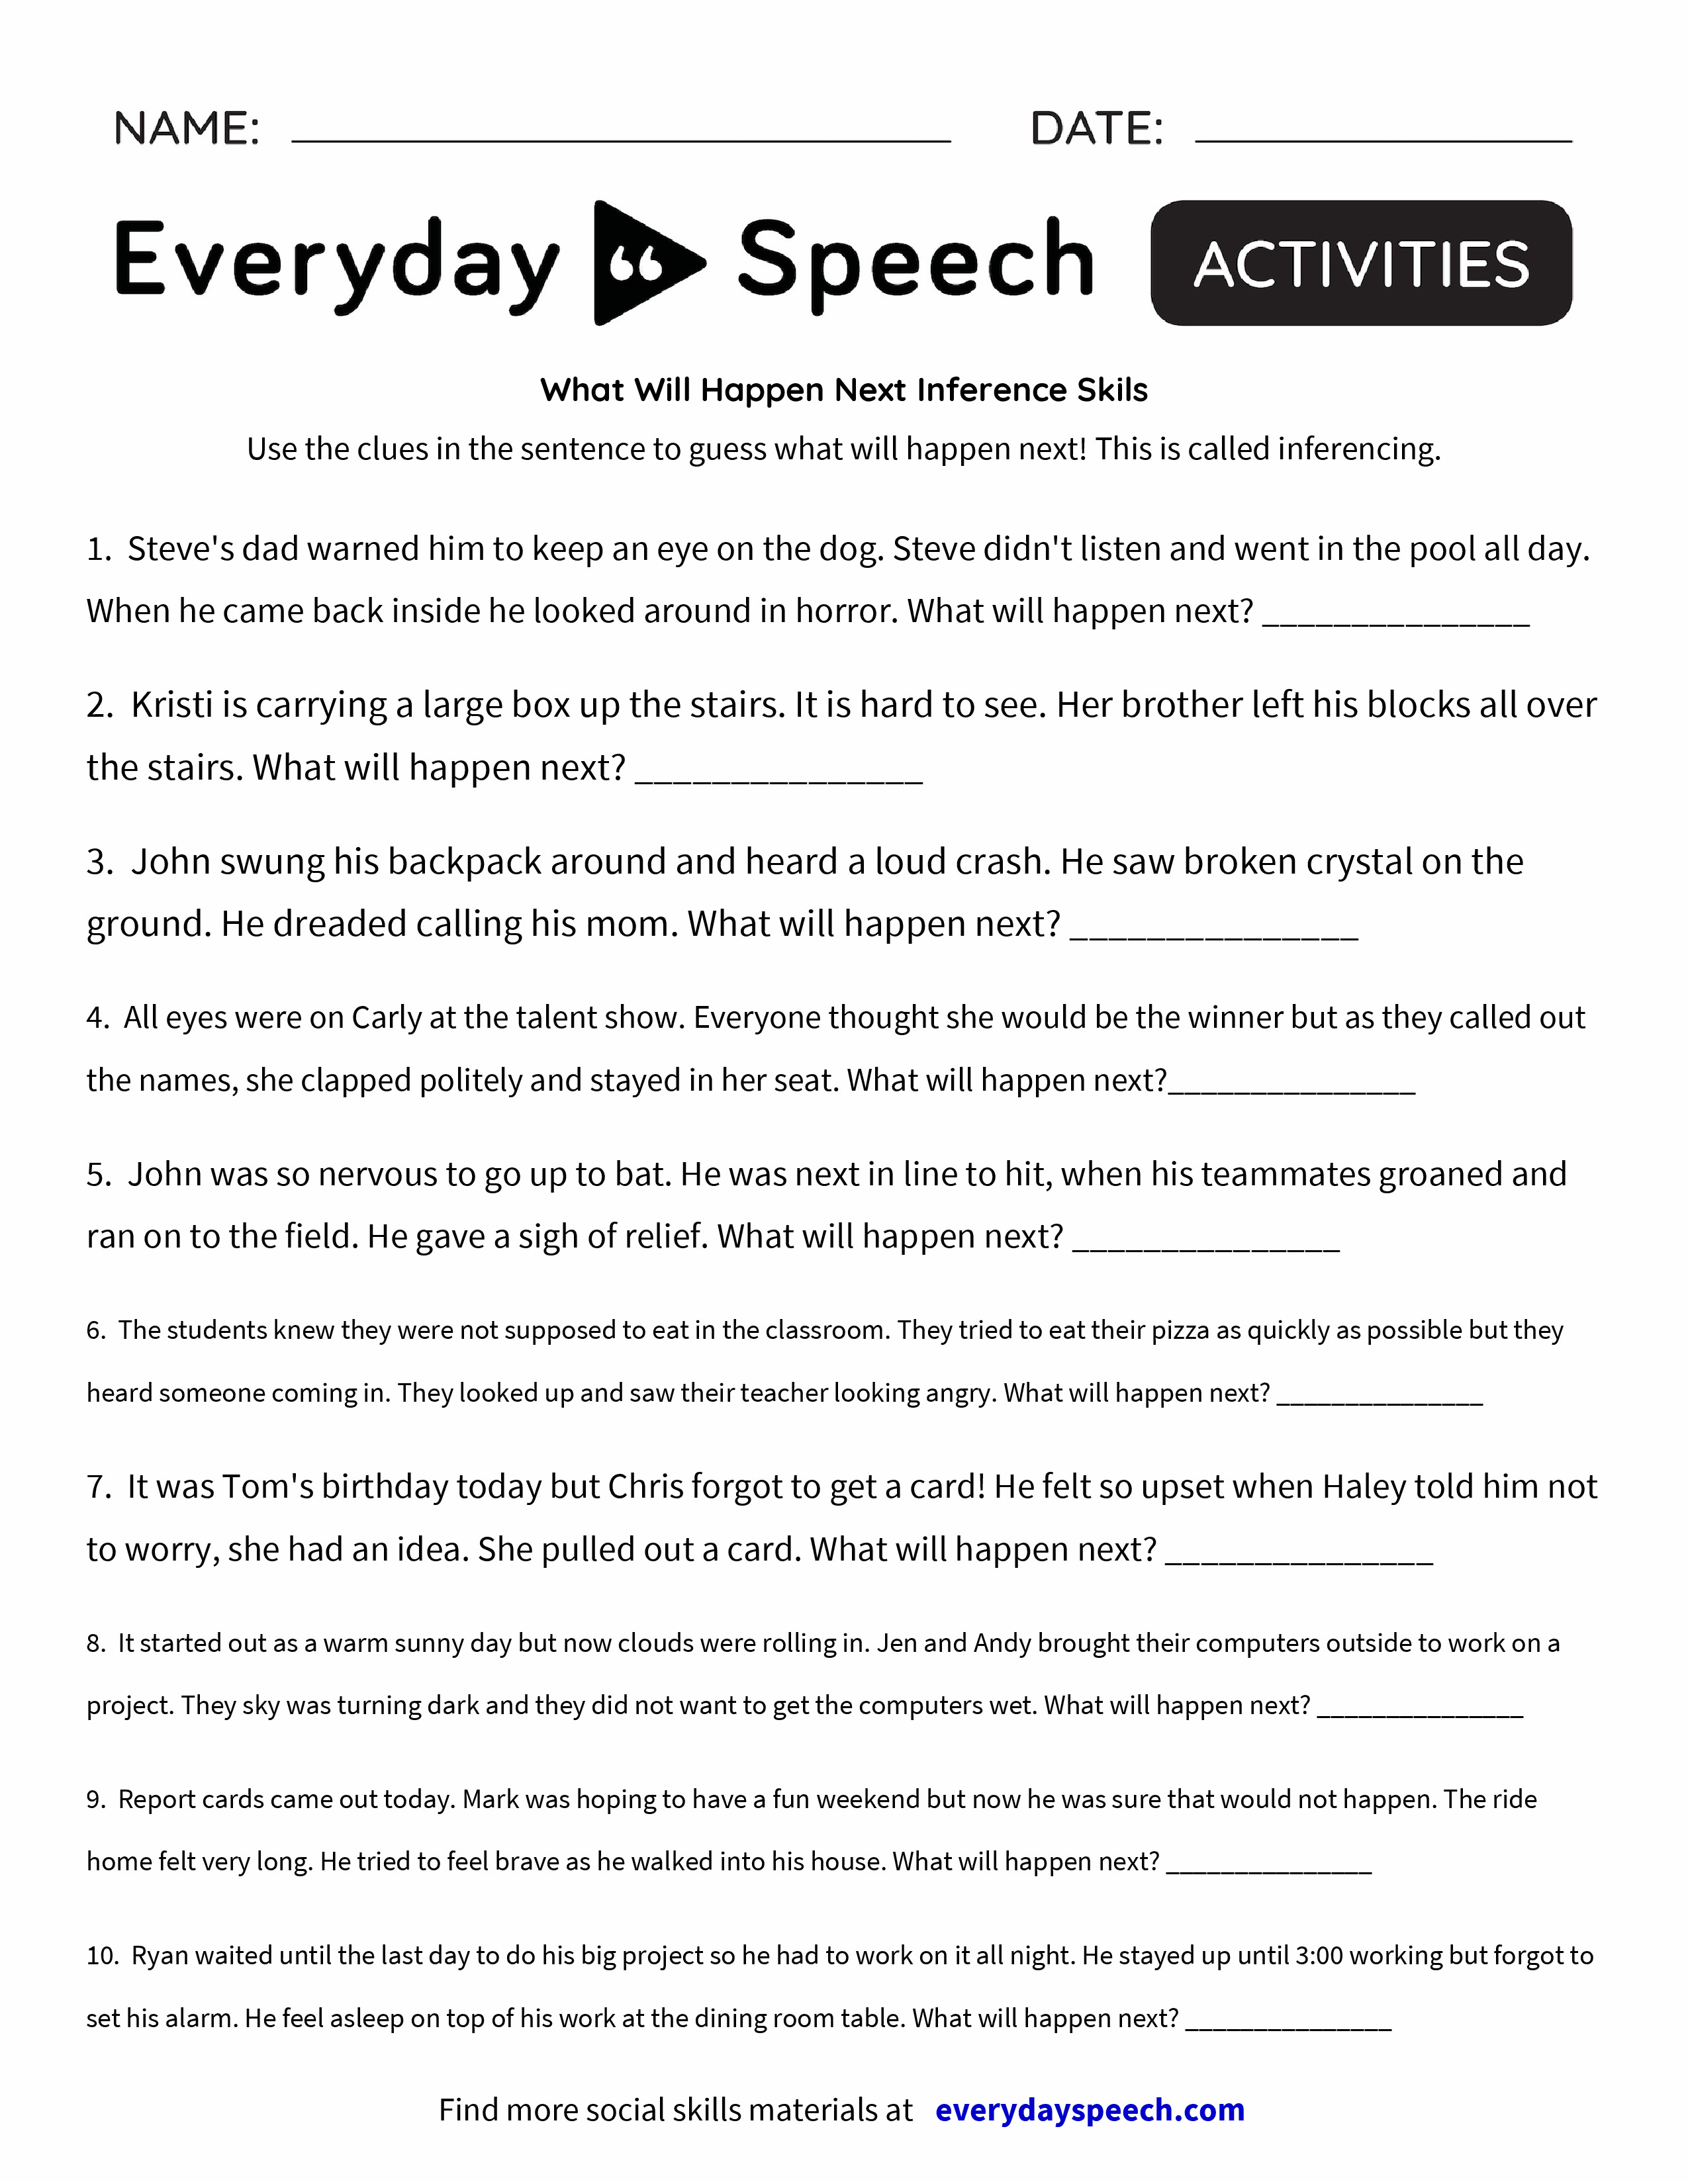 Uncategorized Inferencing Worksheet what will happen next inference skils everyday speech skils